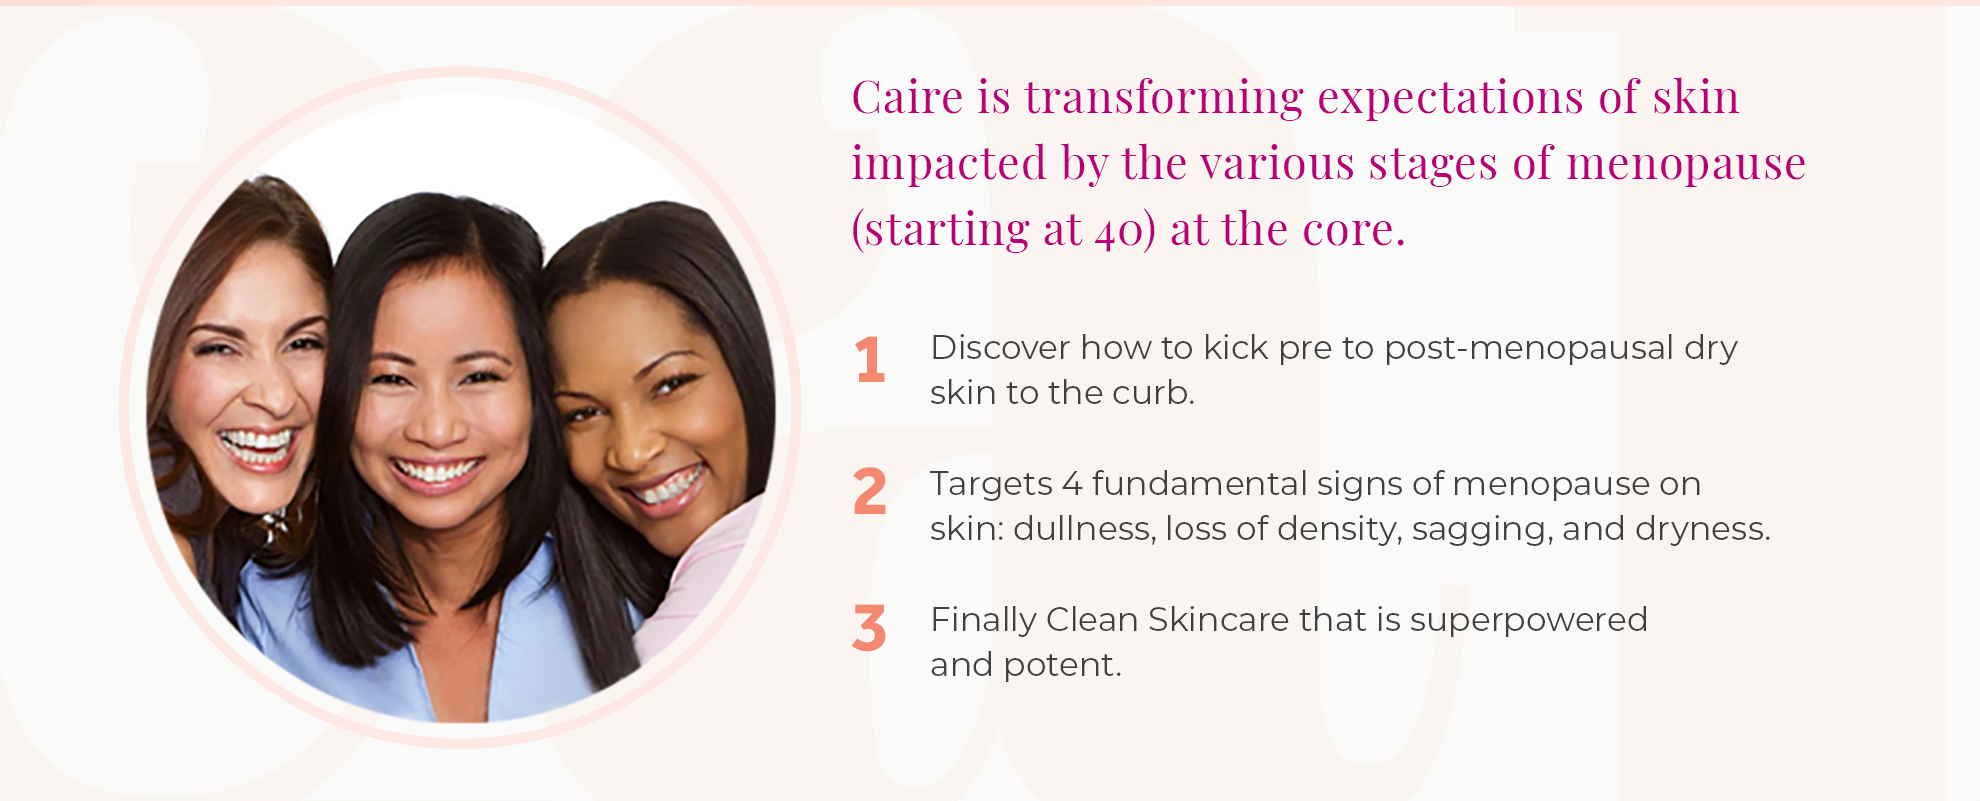 Caire is transforming expectations of skin impacted by the various stages of menopause